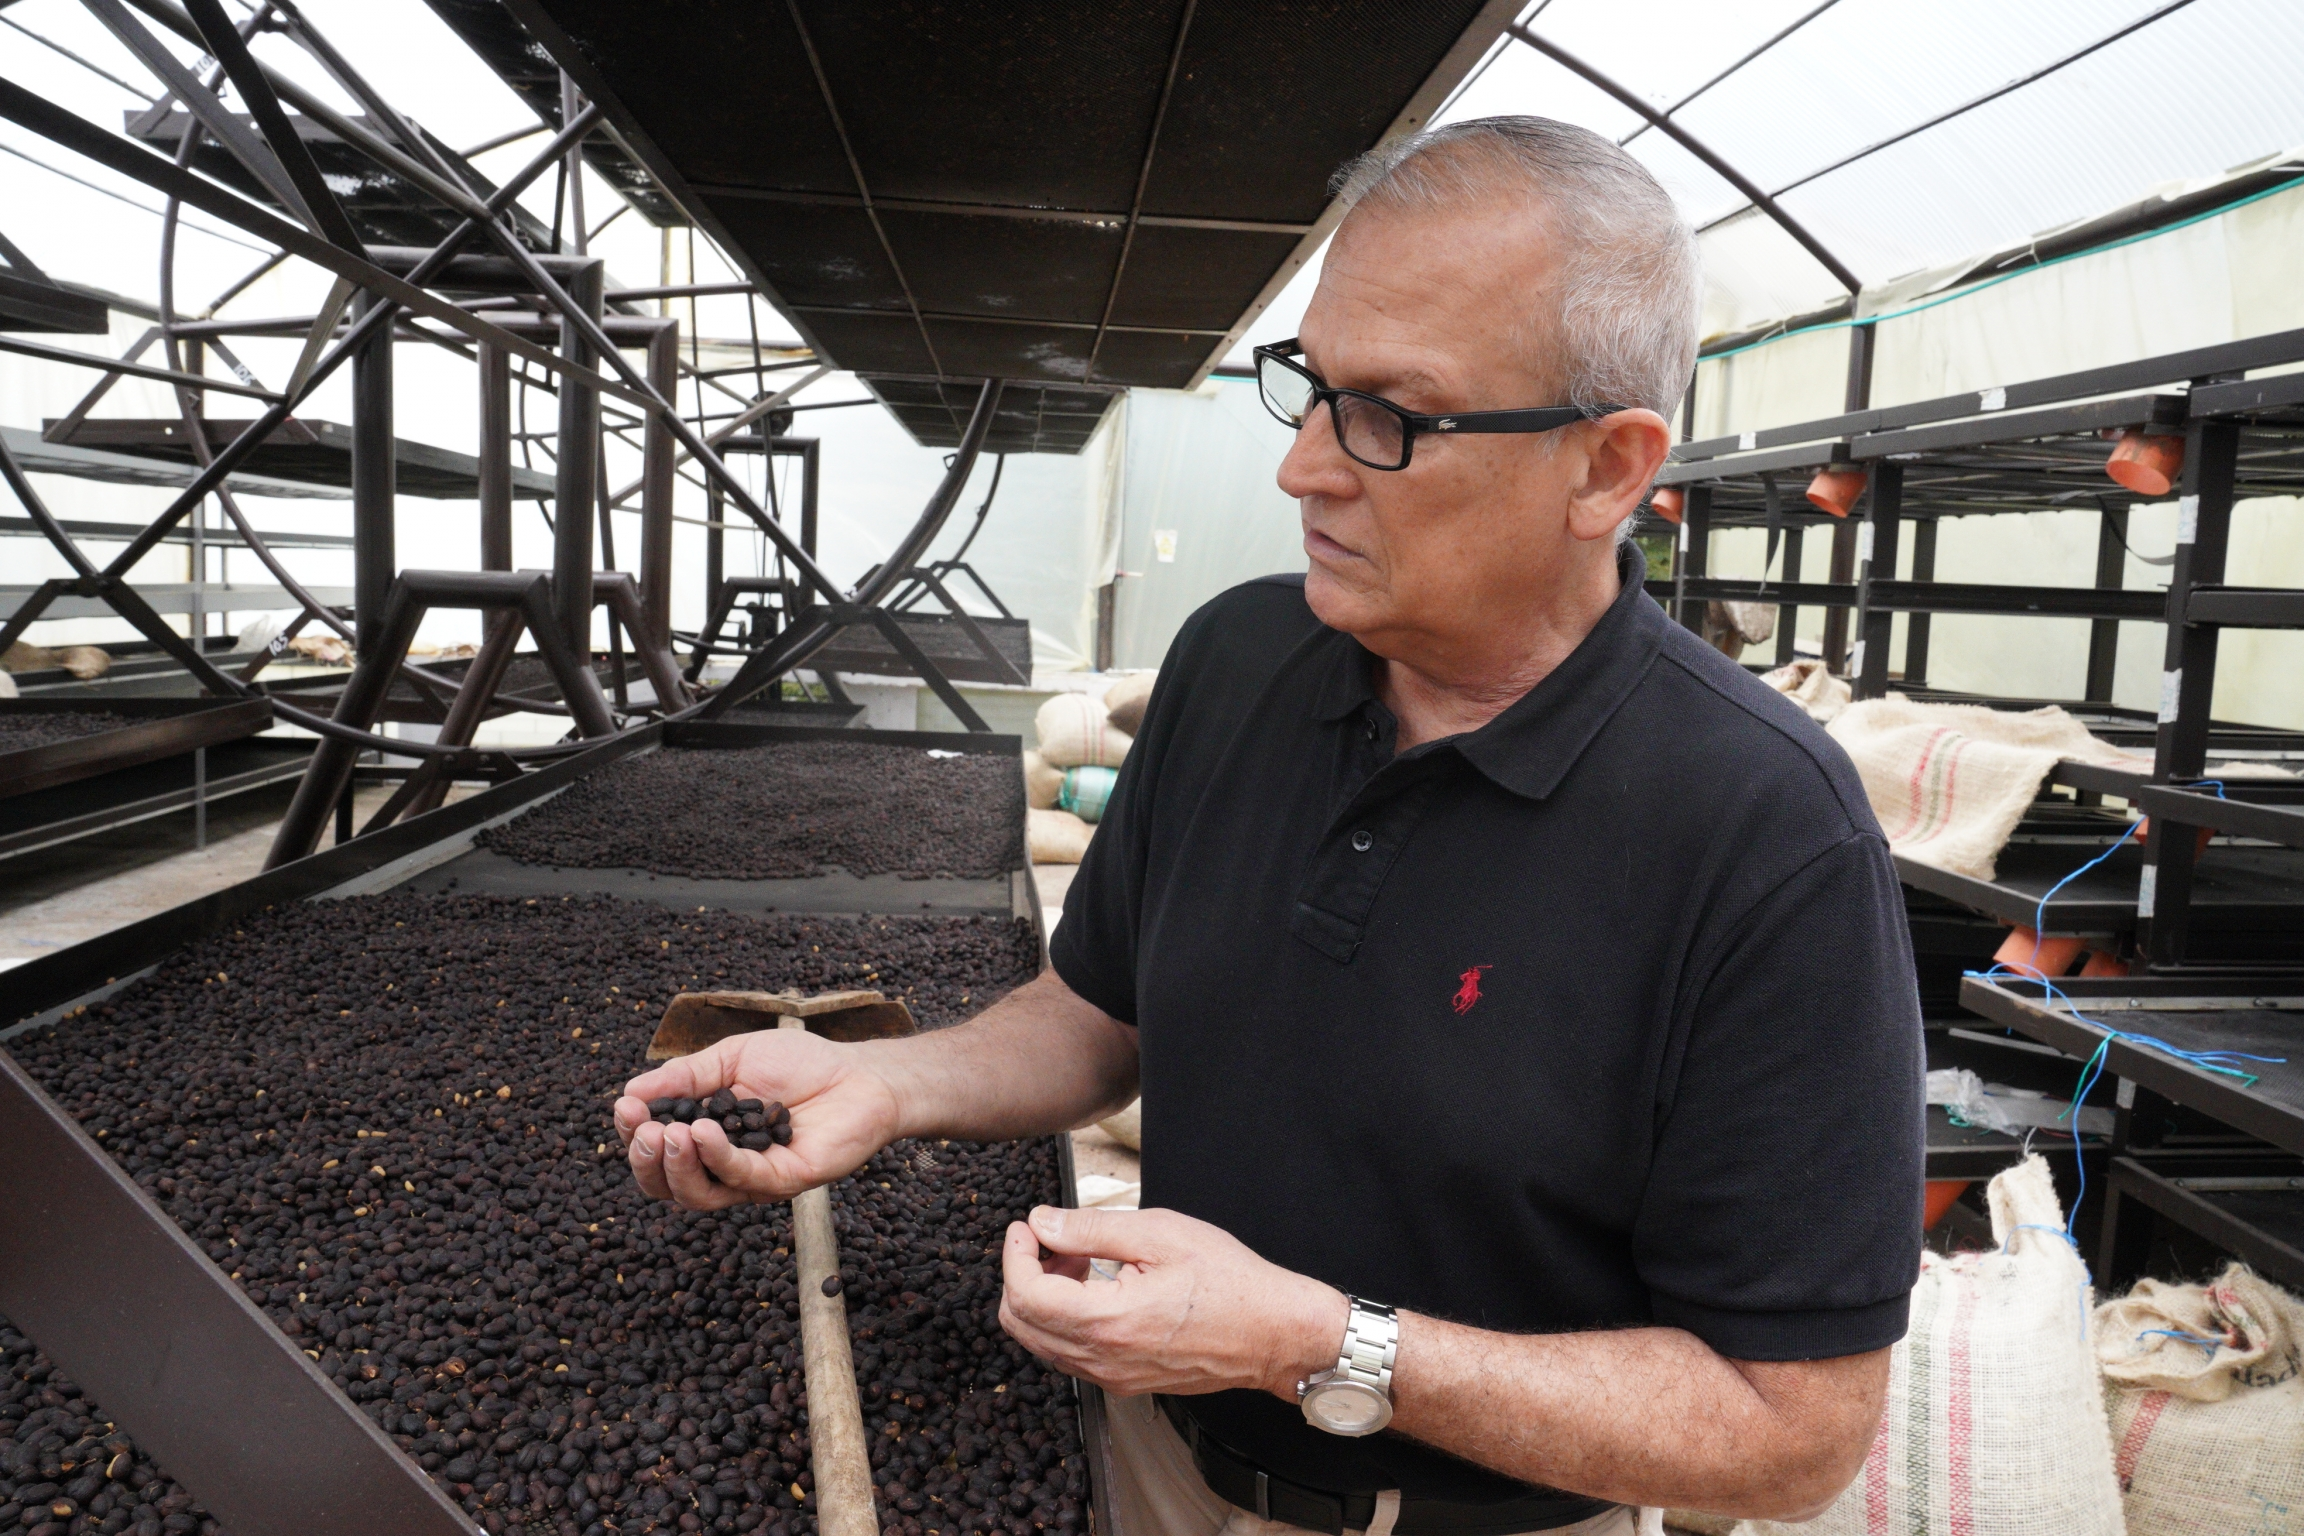 Mauricio Zuñiga checks out a batch of coffee beans that are being dried up at the Immaculada farm near Cali, Colombia, on May 27.